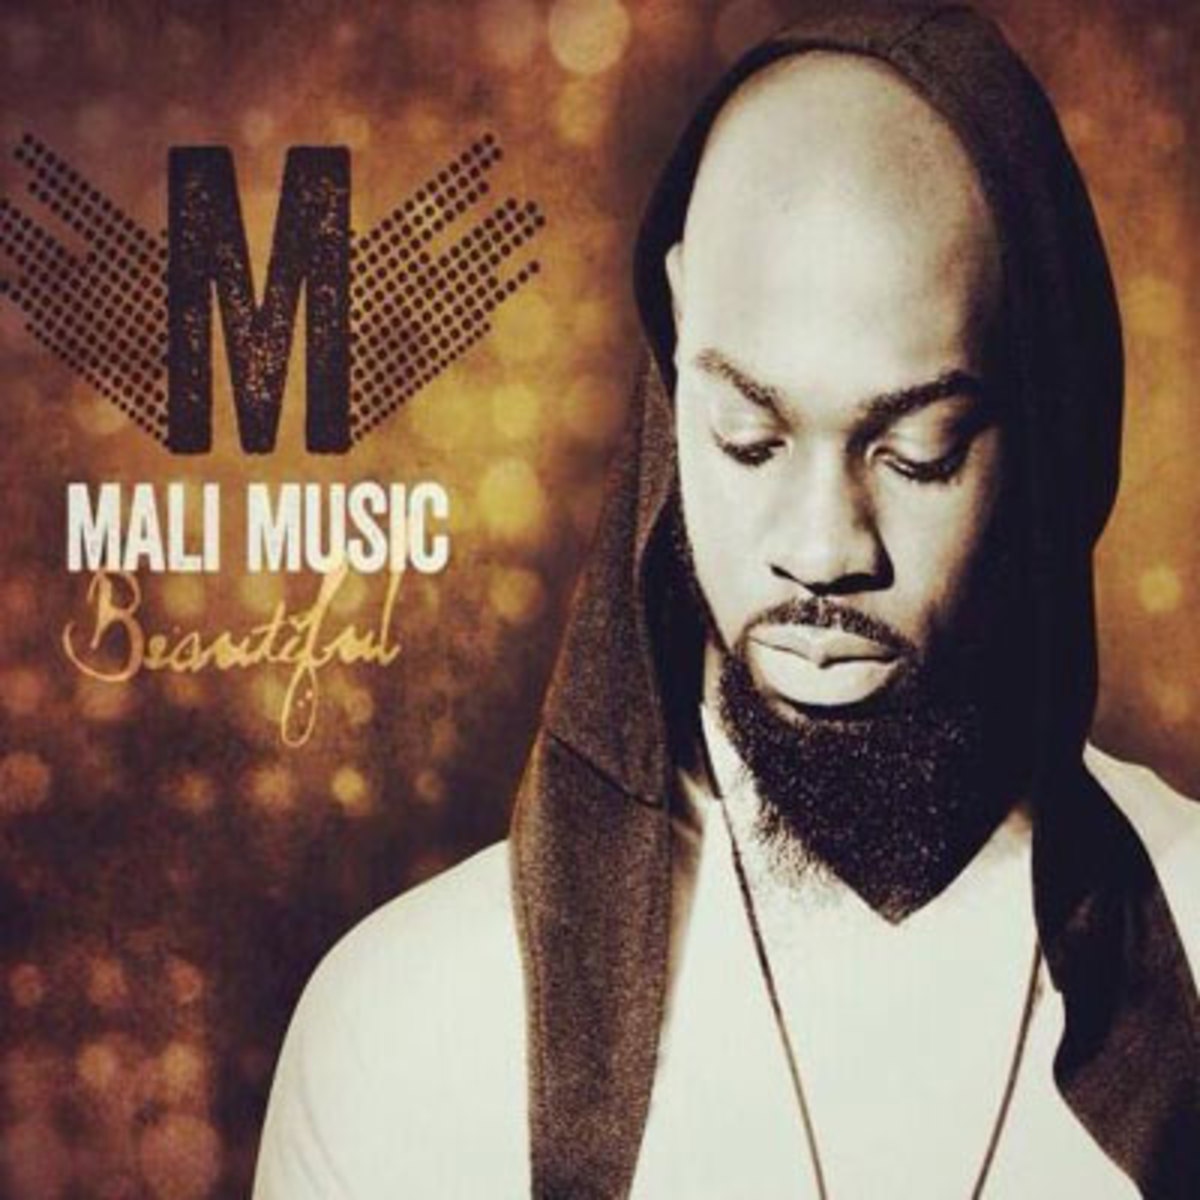 malimusic-beautiful.jpg